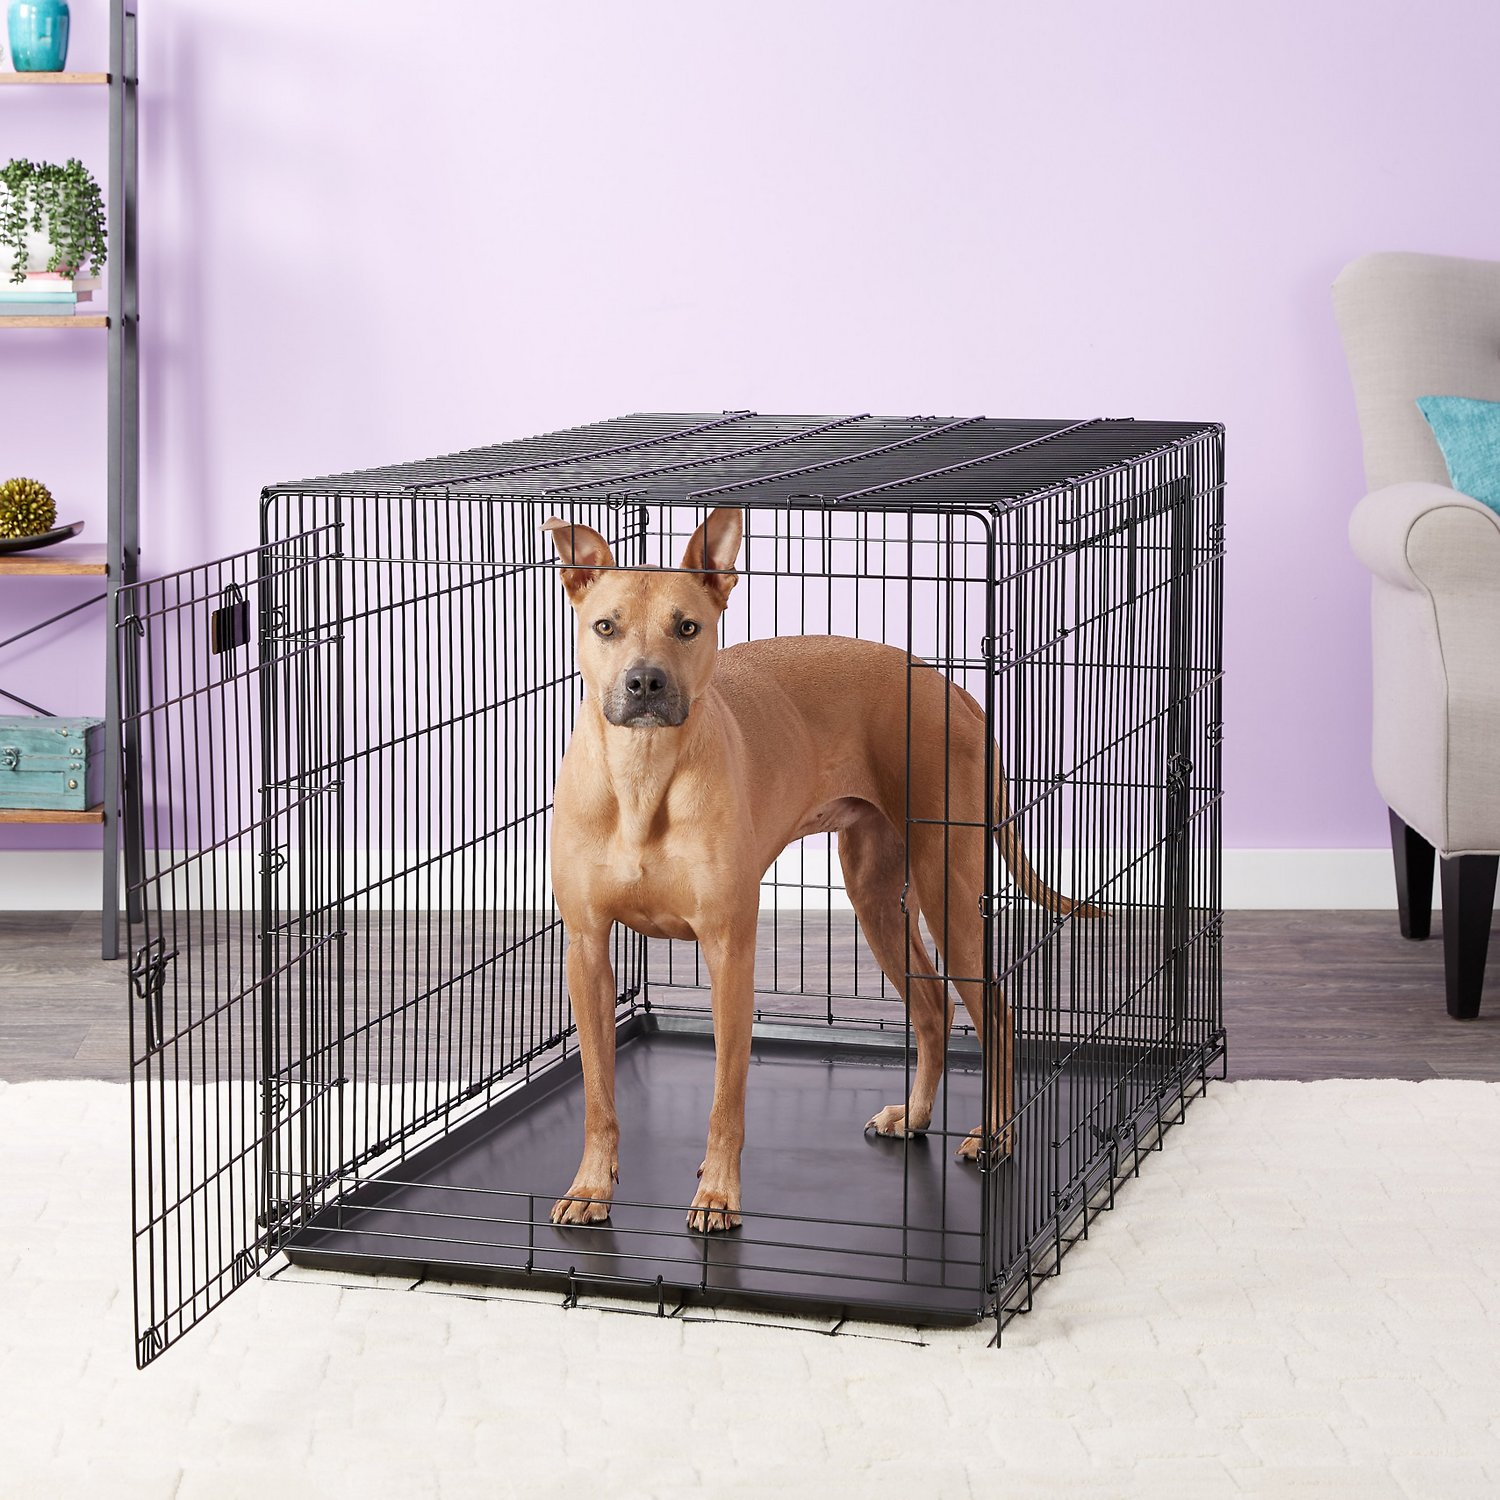 Precision Pet Products Great Crate Double Door Dog Crate X Large